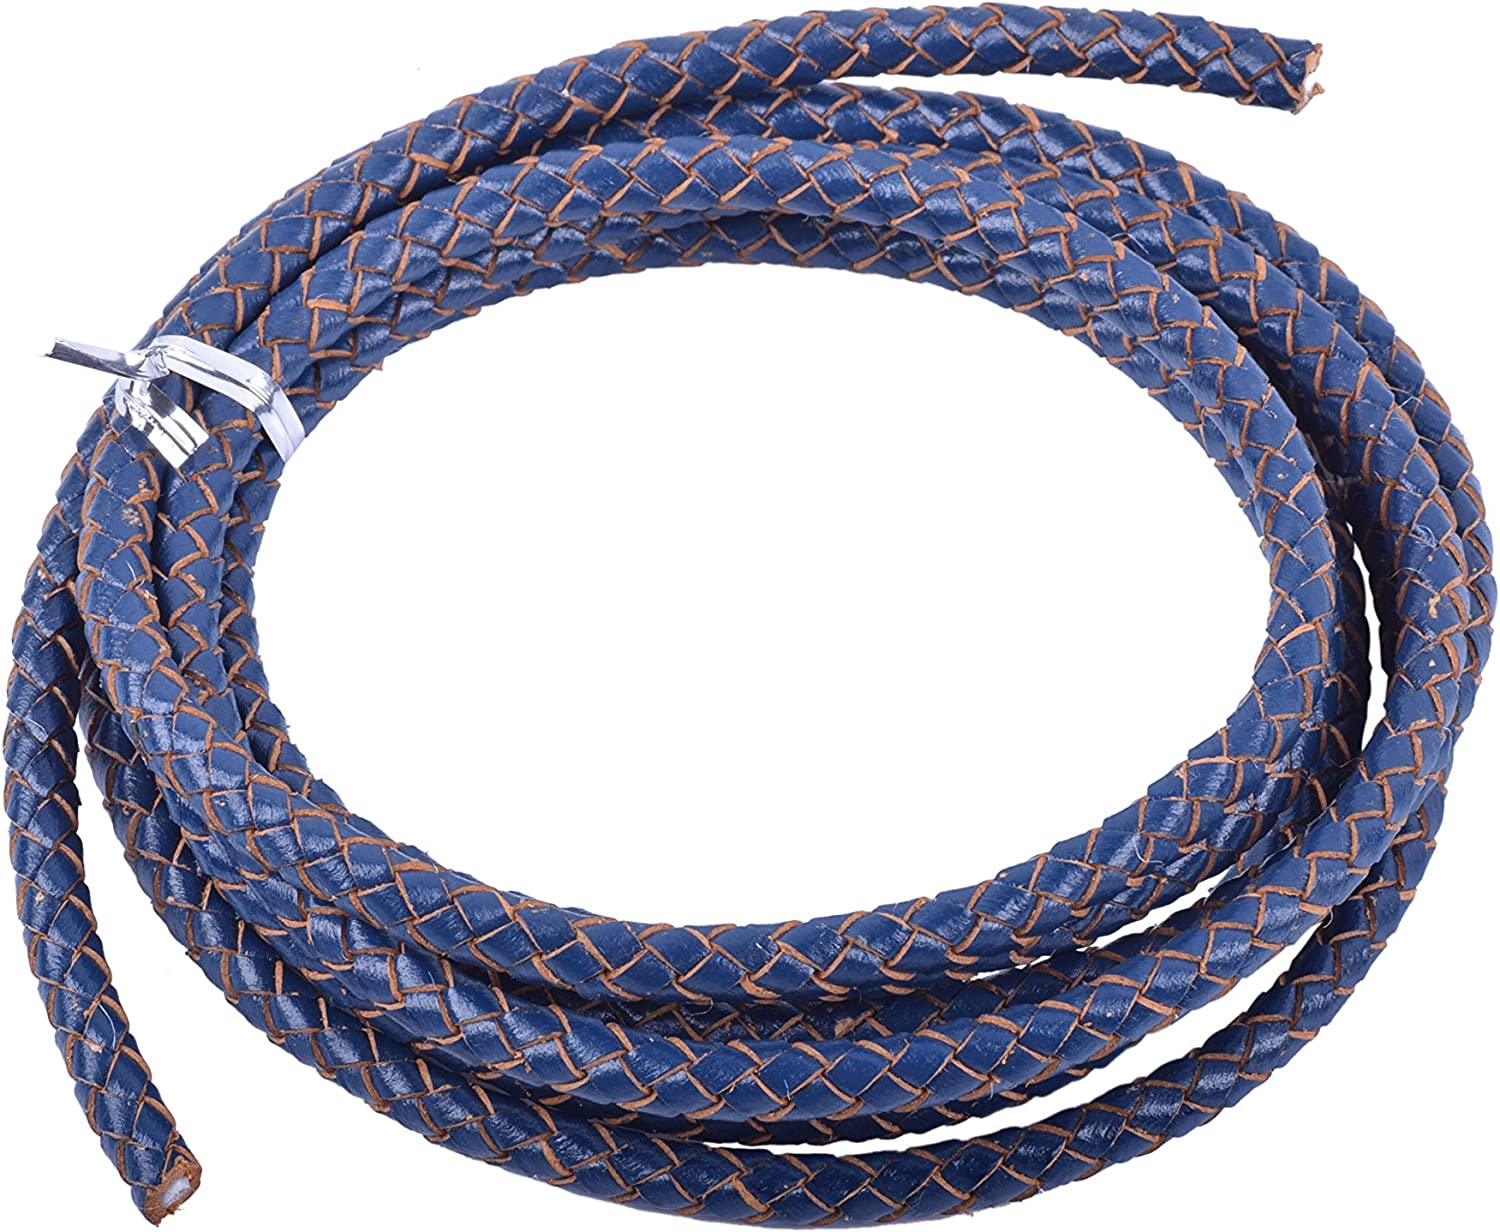 KONMAY 2 Yards 4.0mm Royal Blue Genuine Leather Braided Bolo Leather Cord